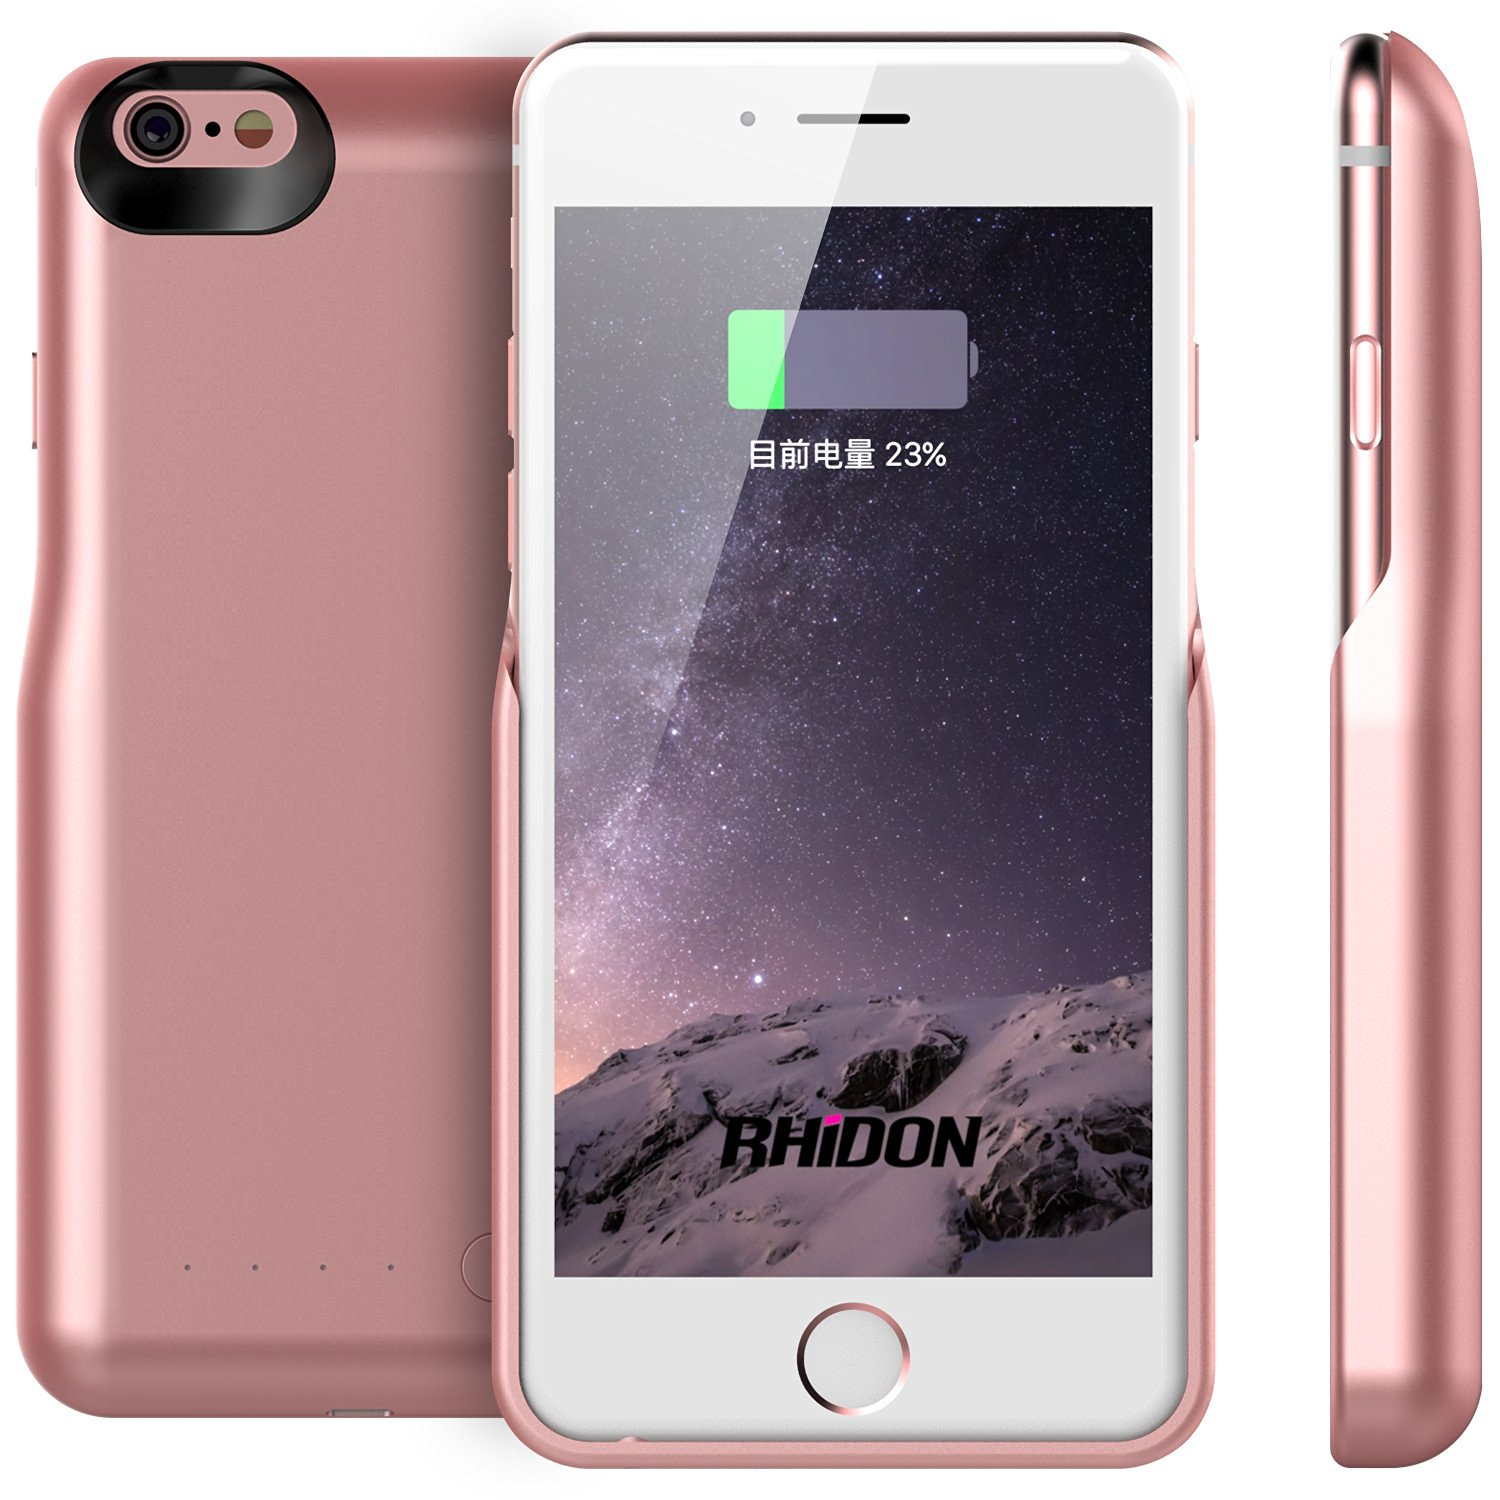 iPhone 6S Battery Case, Rhidon 5000 mAh Power Bank Case Rechargeable Protective Battery Charging Case for Apple iPhone 6 6S (4.7 inch) (Rose Gold)